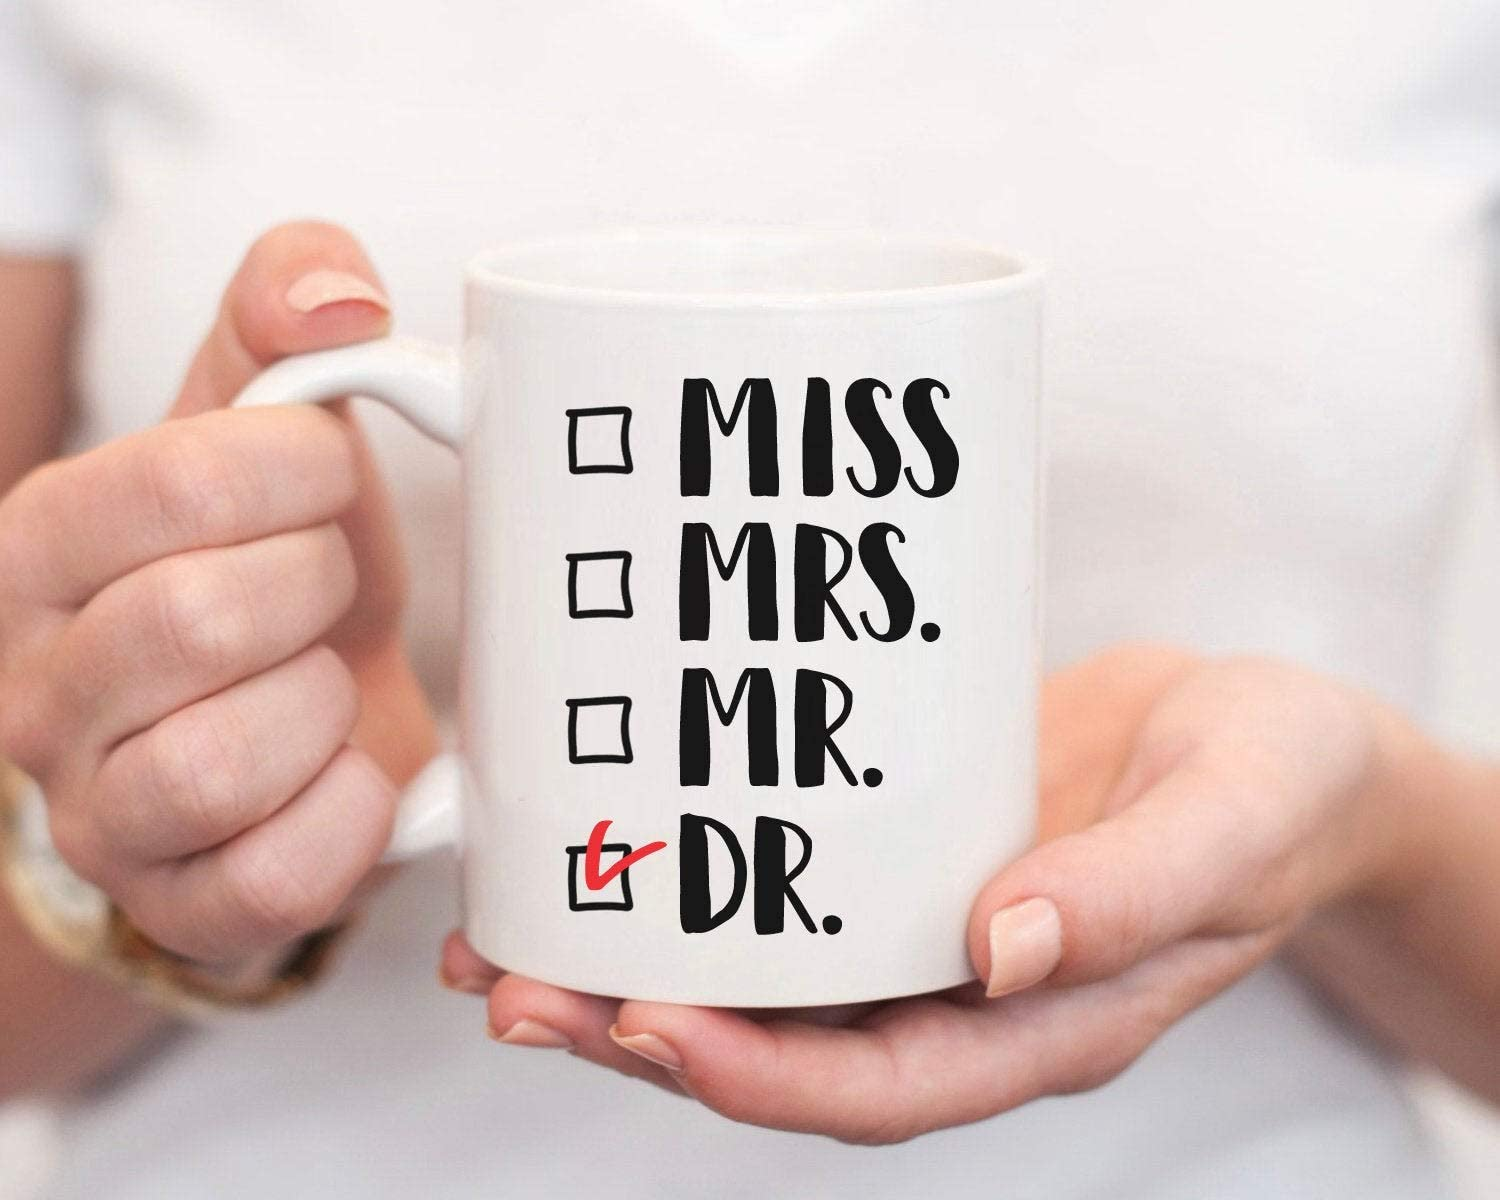 Amazon.com: Miss, Mrs, Mr, Dr - Doctor Gift, Funny Doctor Gifts for Women, Doctor Gift For Her, Woman Doctor, Funny Doctor Mug, Gift For Doctor: Kitchen & Dining